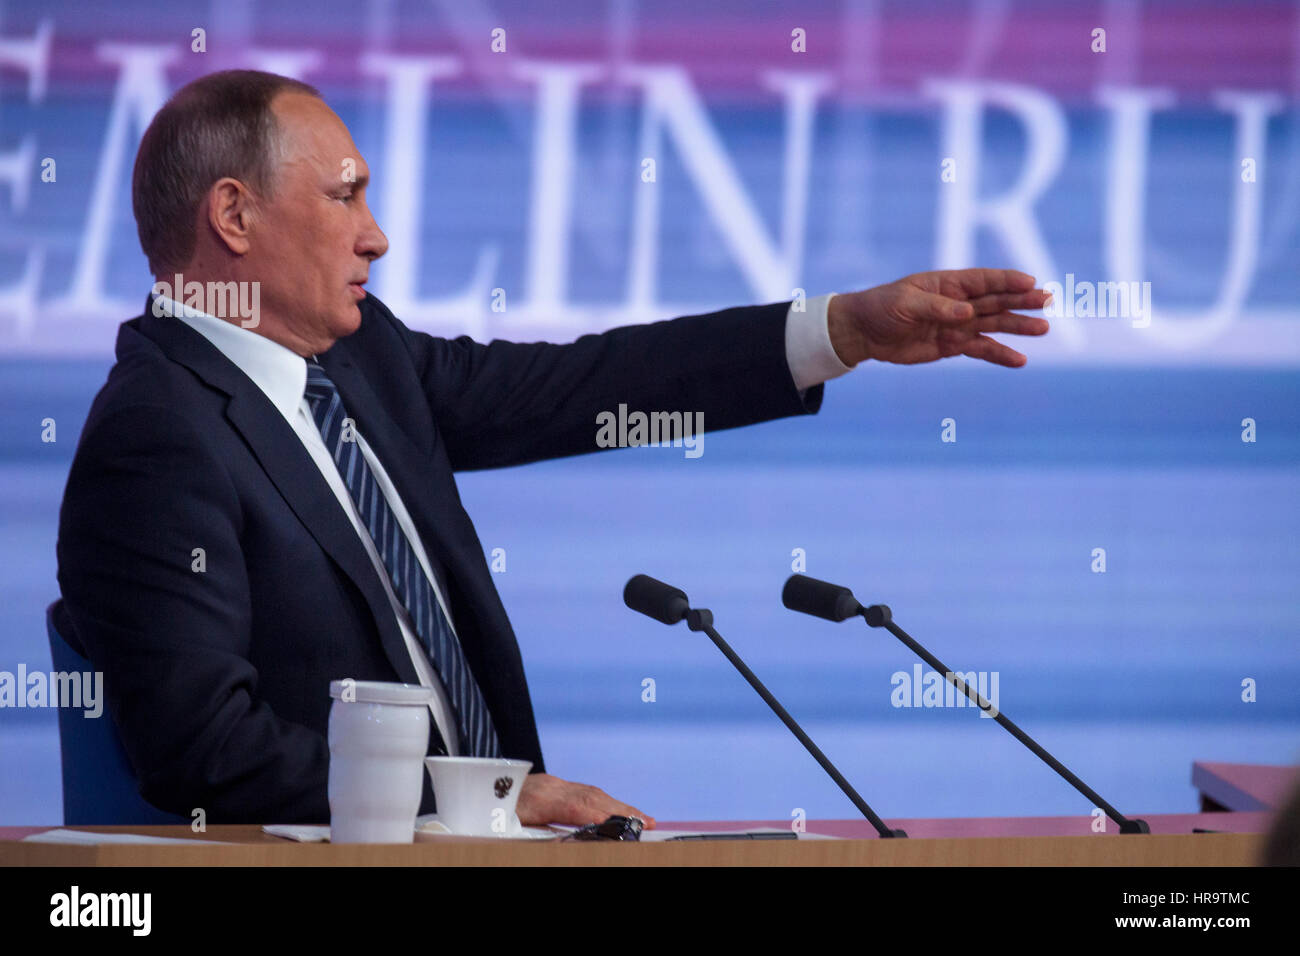 Moscow, Russia. 17th Dec, 2015. Russian president Vladimir Putin during the annual press conference at the World - Stock Image